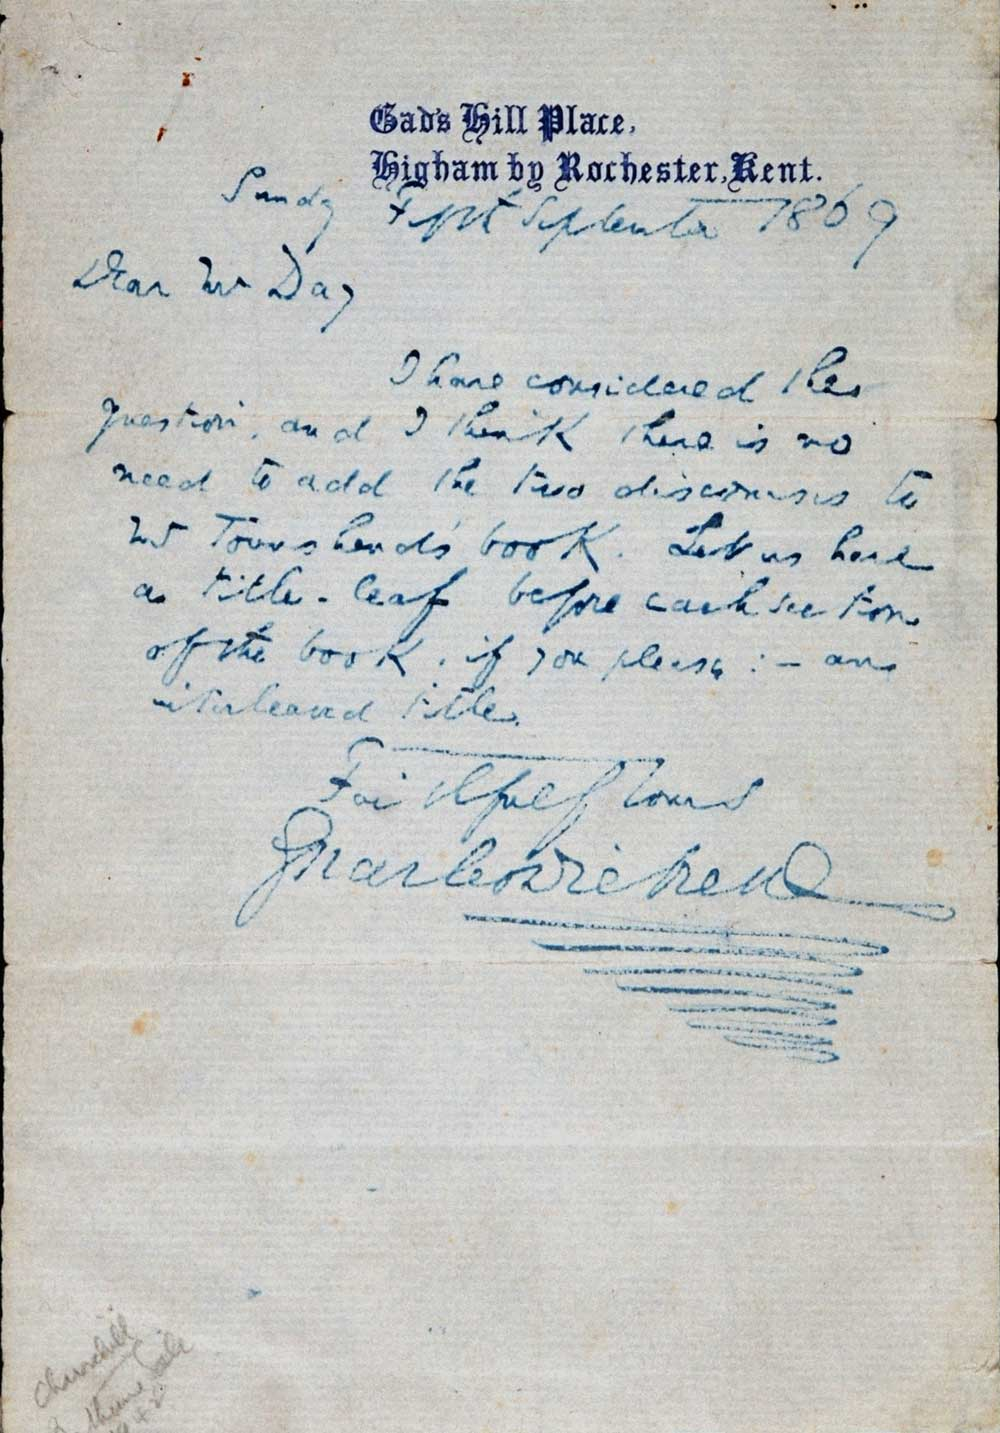 Letter. Charles Dickens to William Day, Gad's Hill Place, Higham by Rochester, Kent, 5 September 1869